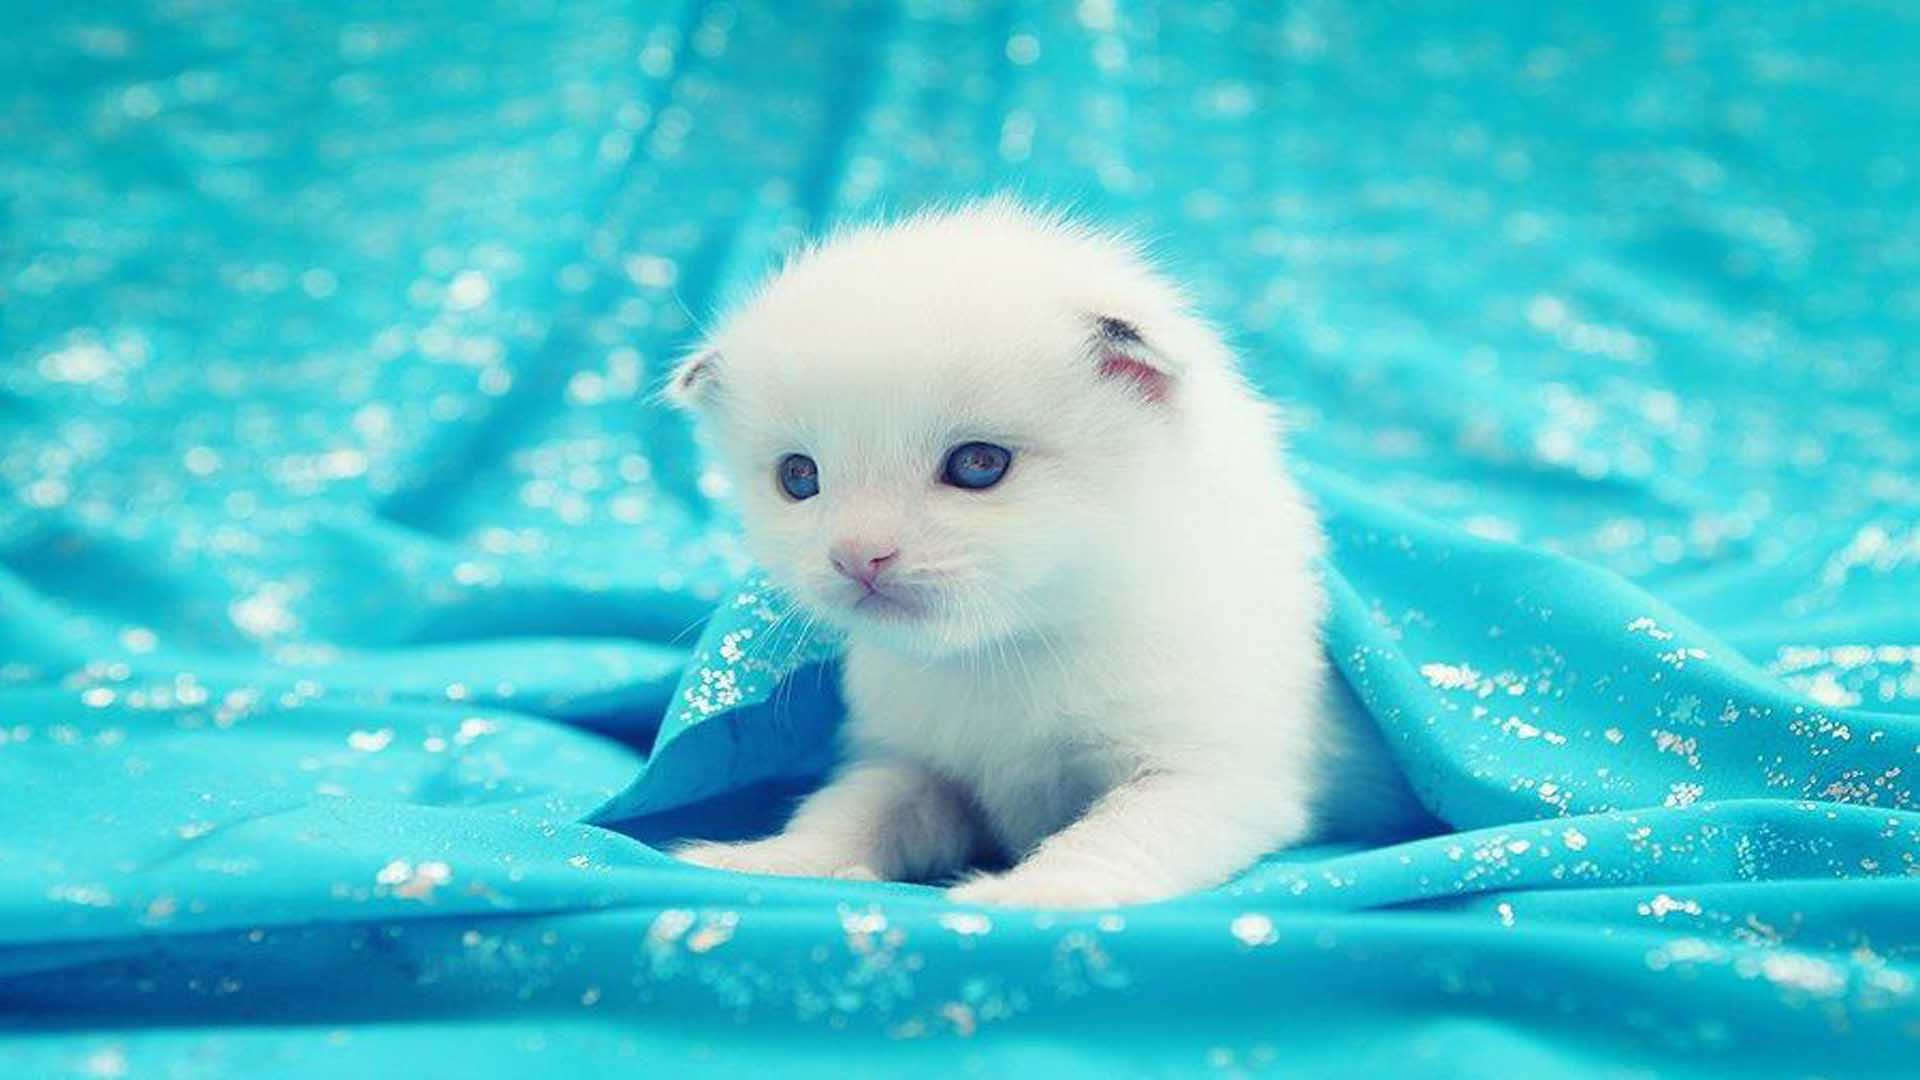 Cute Kitten Desktop Wallpaper   DreamLoveWallpapers 1920x1080